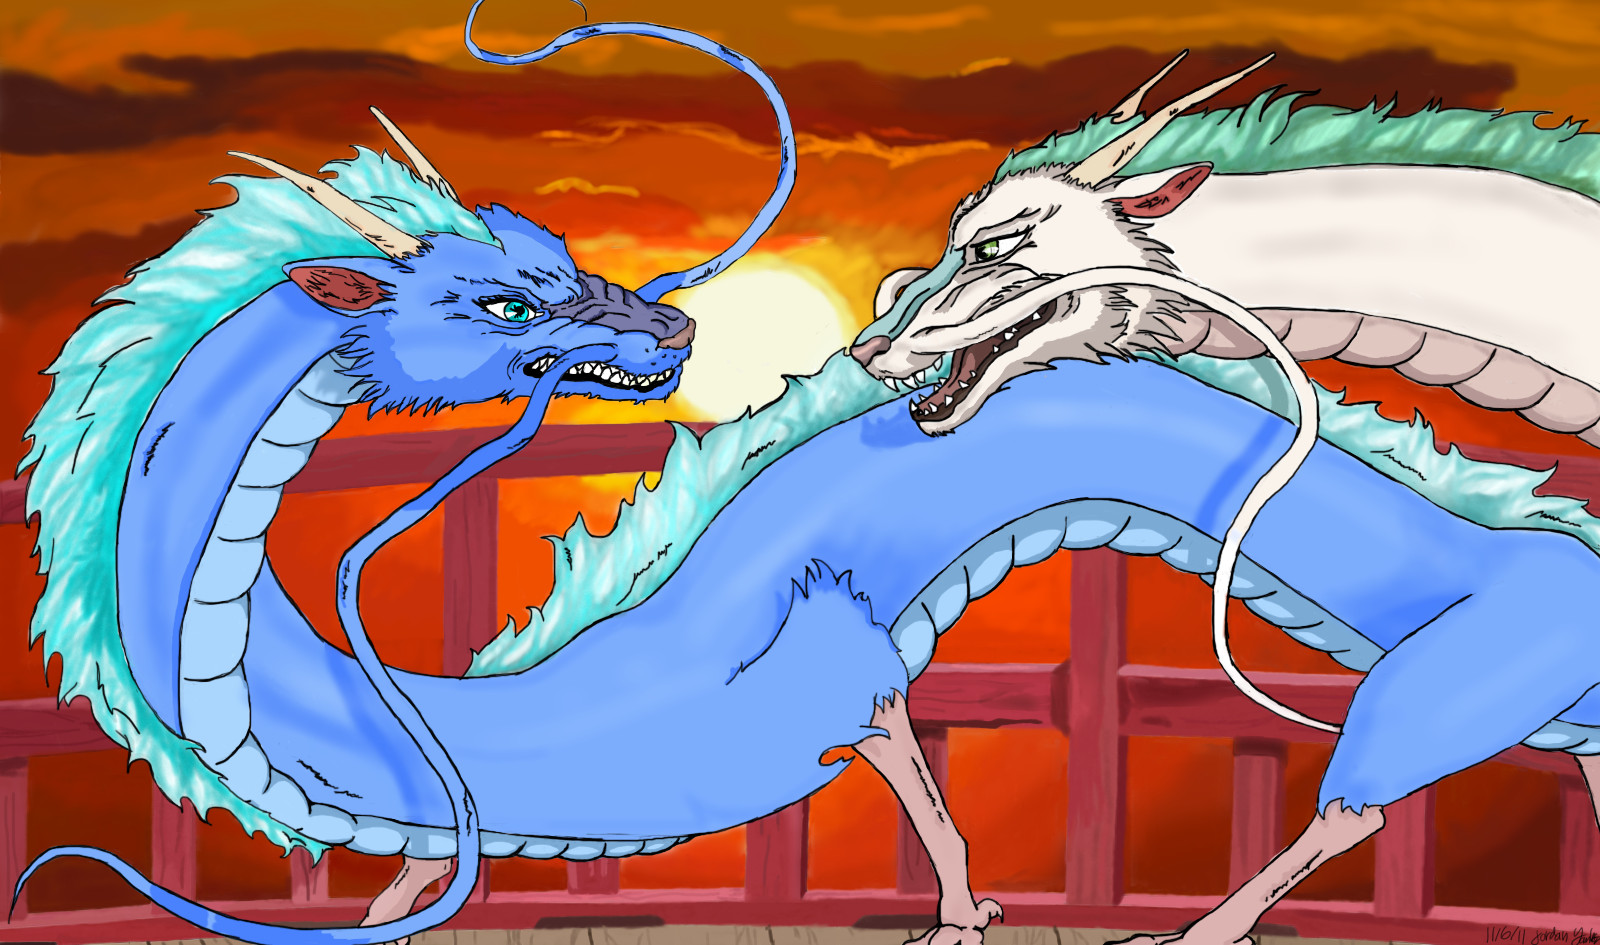 Spirited Away 2 2019 >> Spirited Away 2 - Haku fights against his own by SFGeronimo on DeviantArt